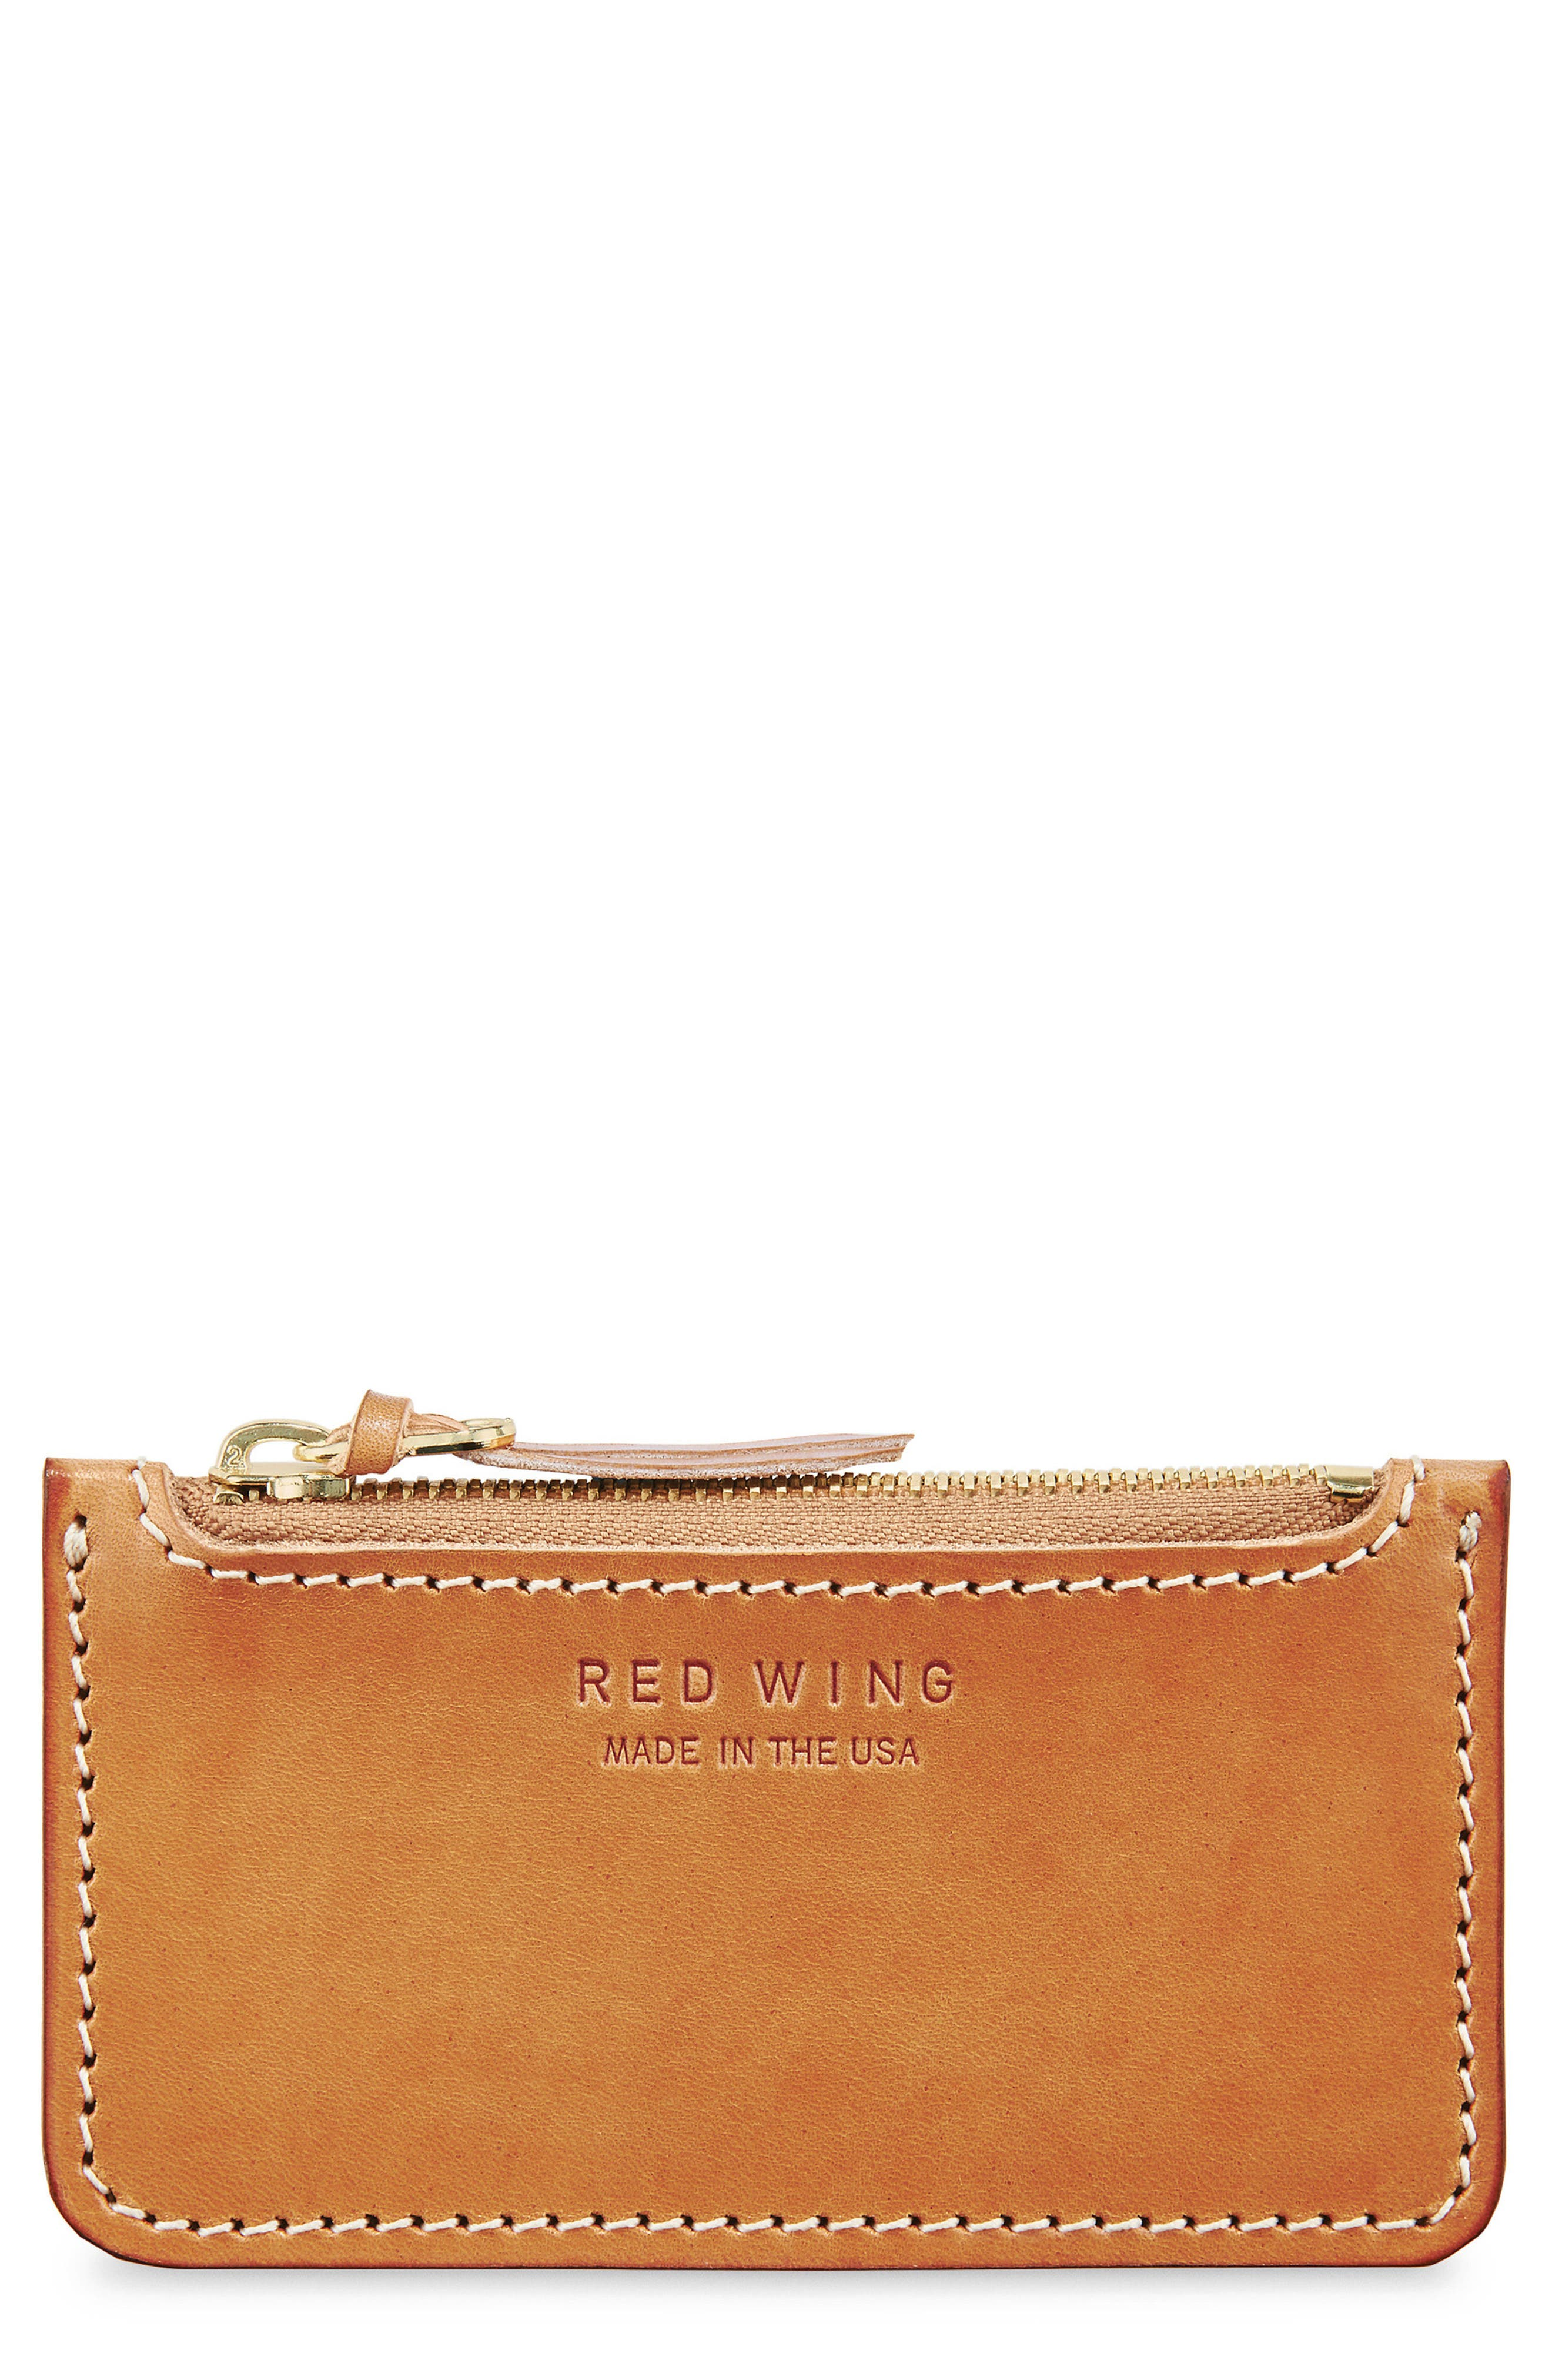 Once Leather Zipper Pouch,                             Main thumbnail 1, color,                             Tanned Vegetable